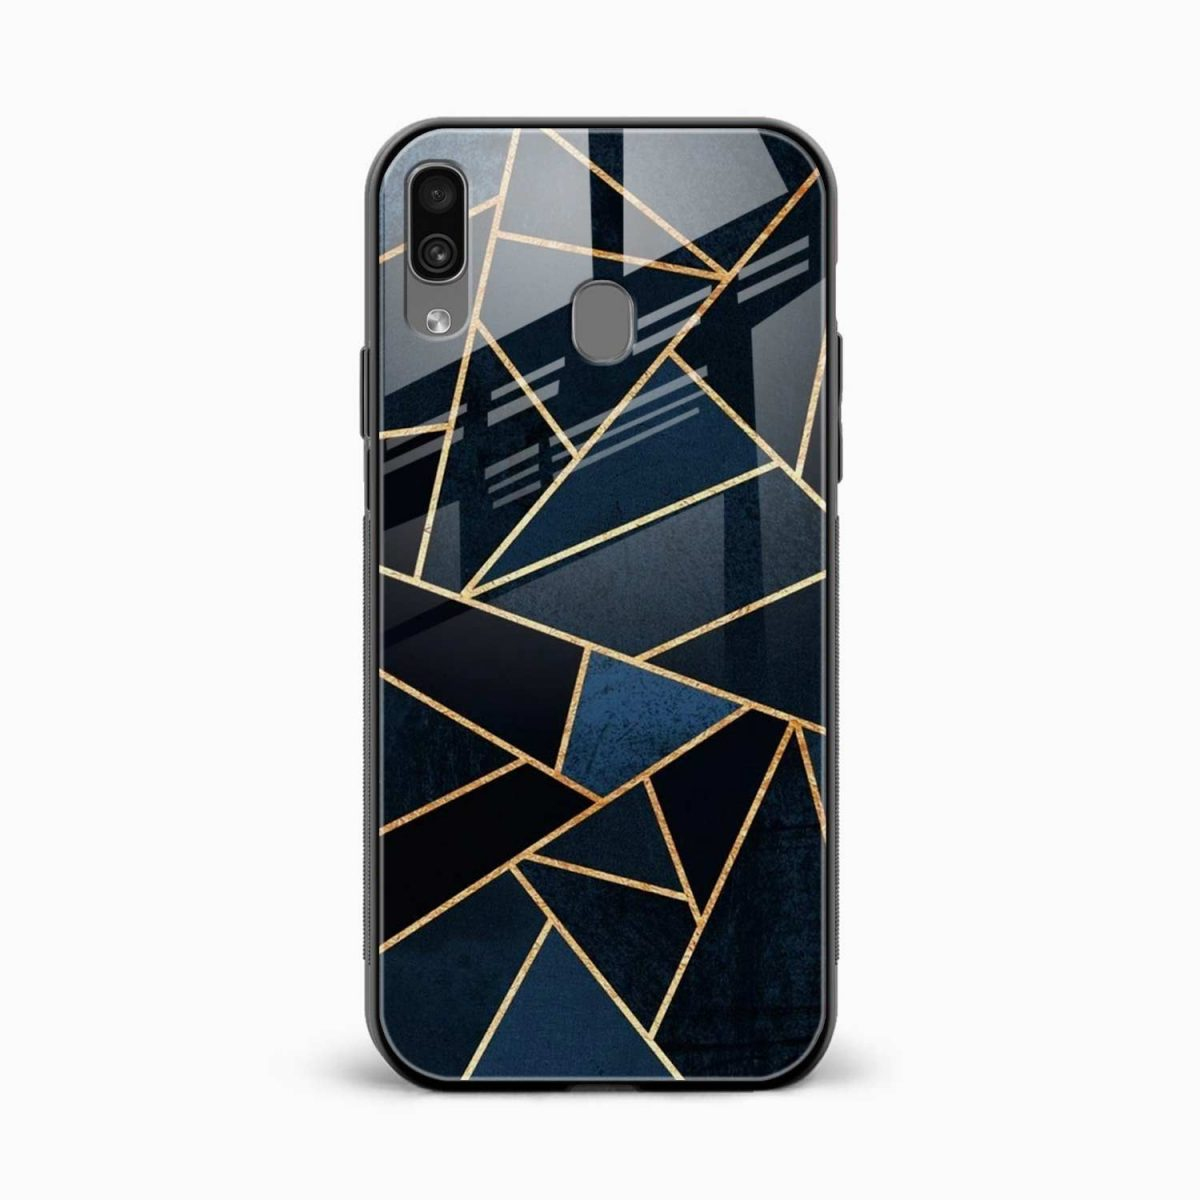 zig zag pattern front view samsung galaxy a30 back cover